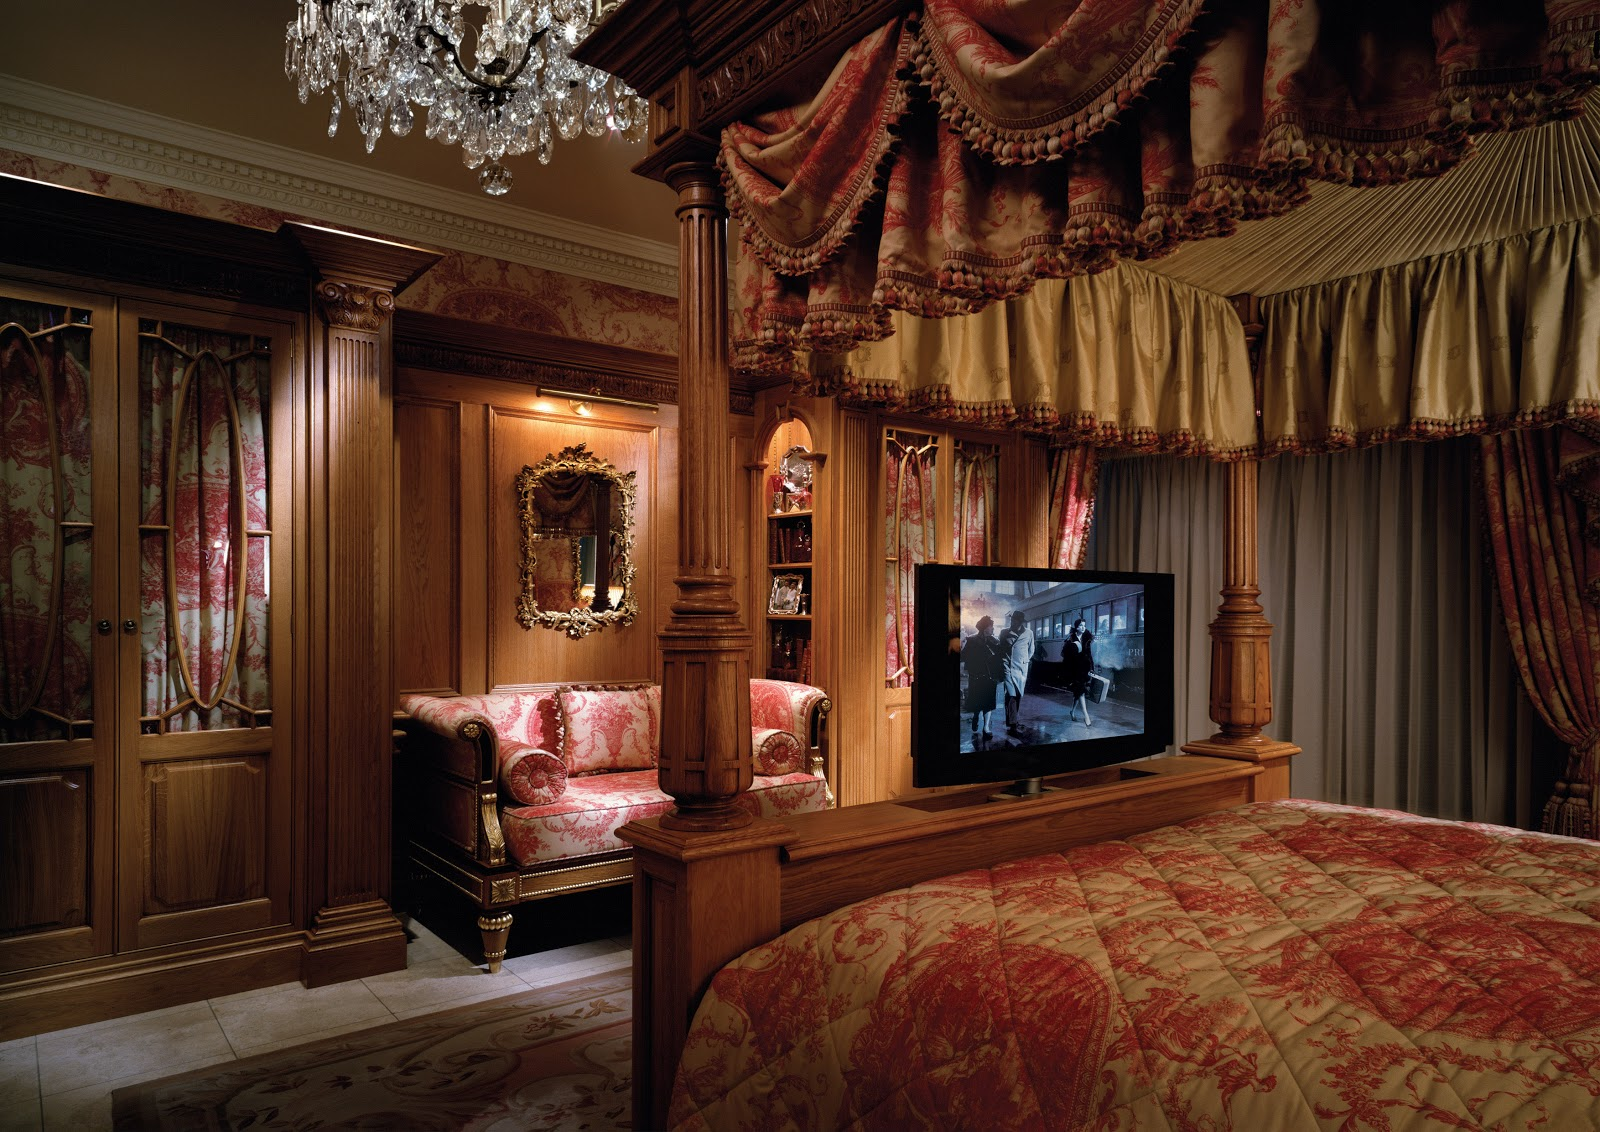 Regency Bedroom Furniture Tradition Interiors Of Nottingham Clive Christian Warm Luxe Furniture